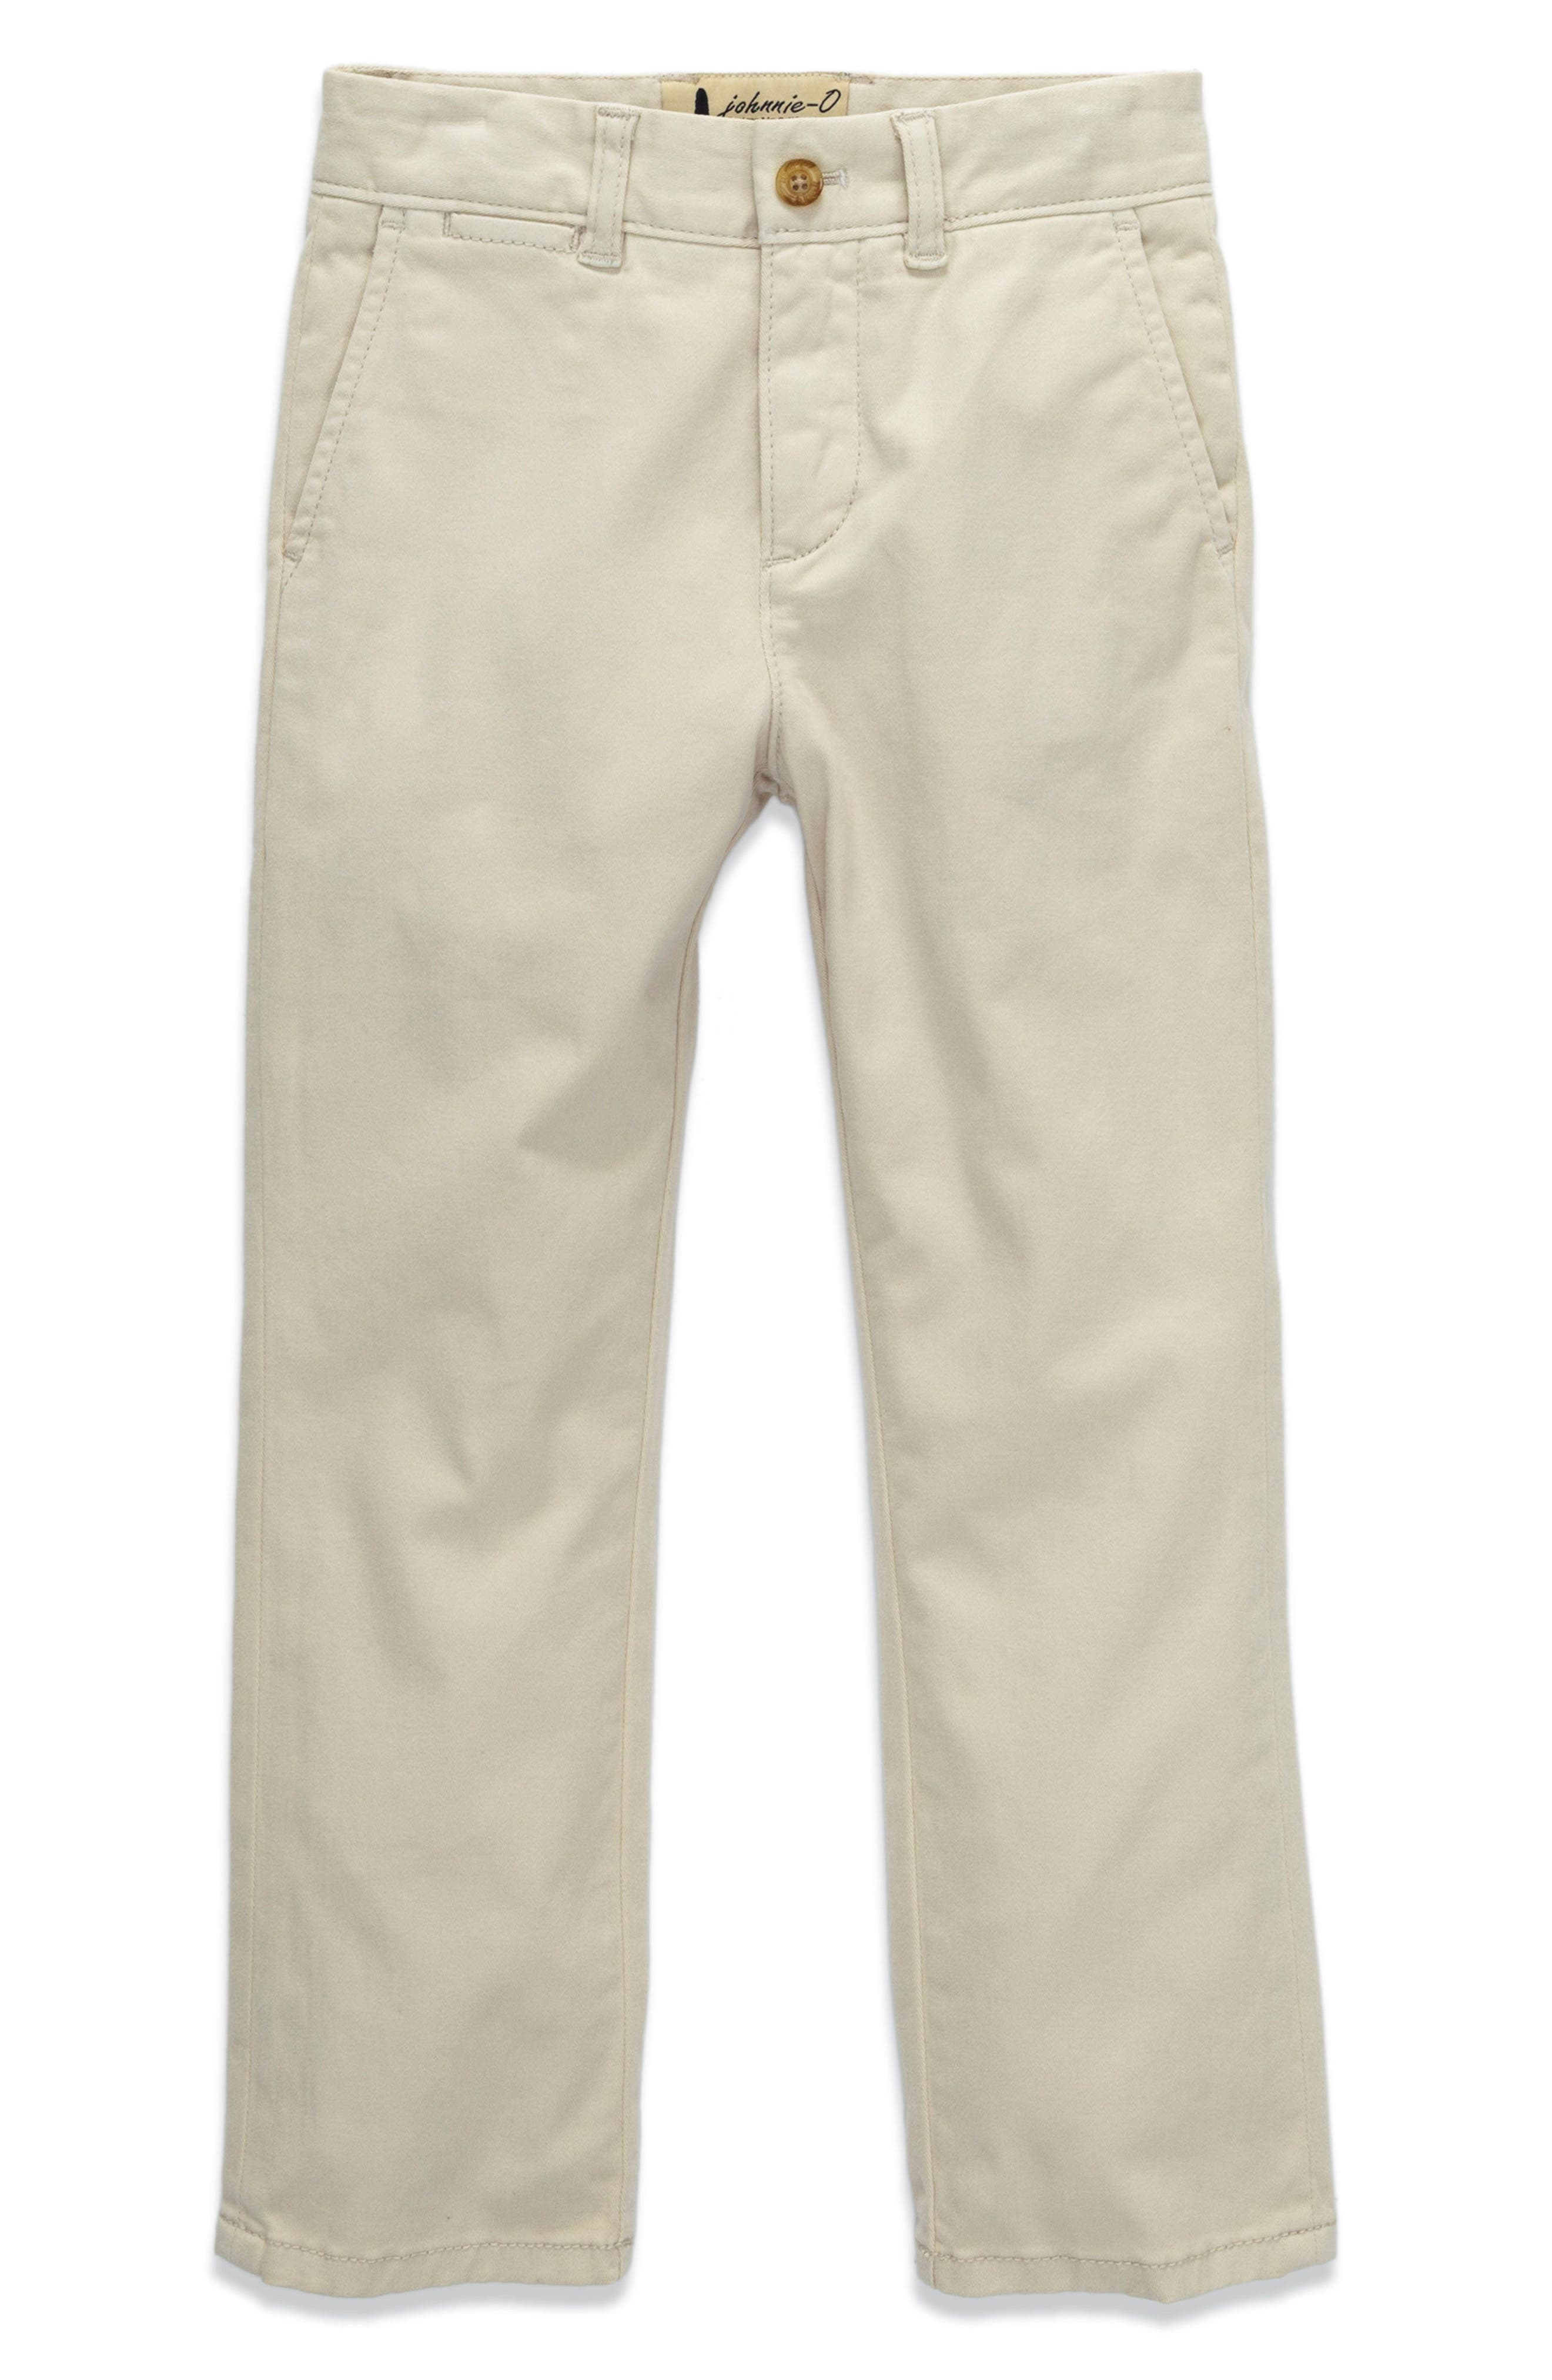 Alternate Image 1 Selected - johnnie-O Napa Stretch Chinos (Little Boys)